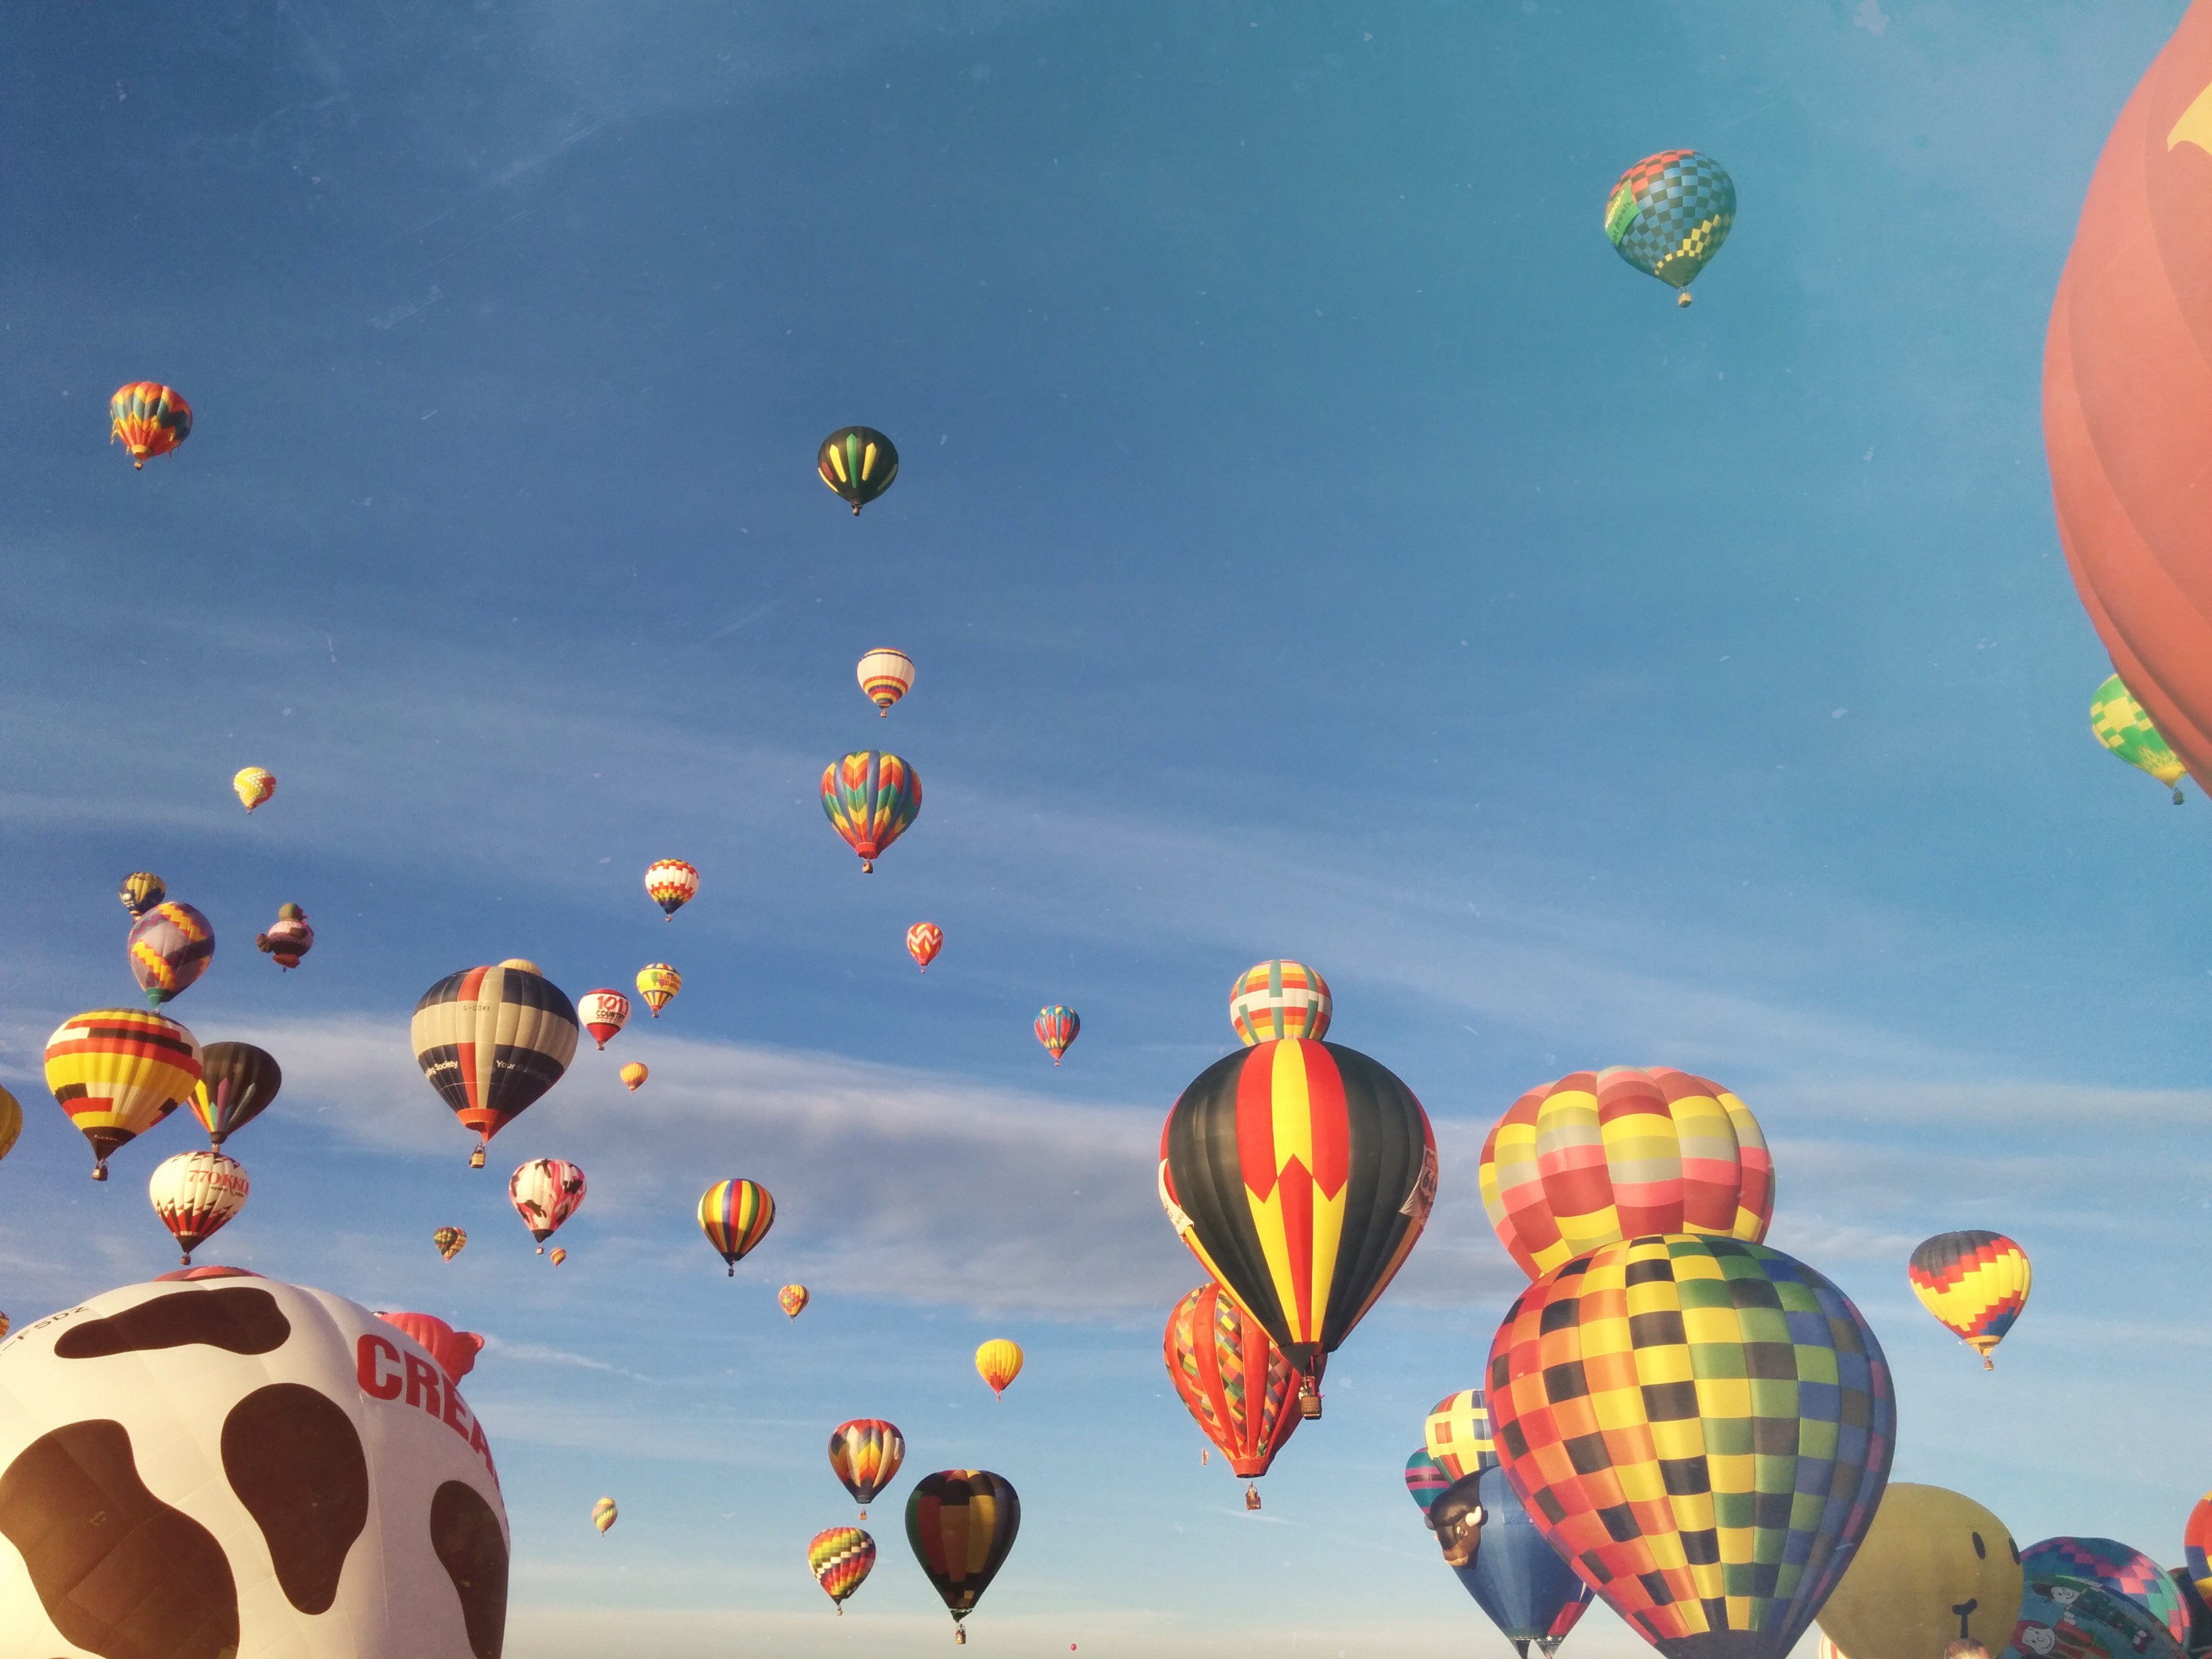 baloons in the sky